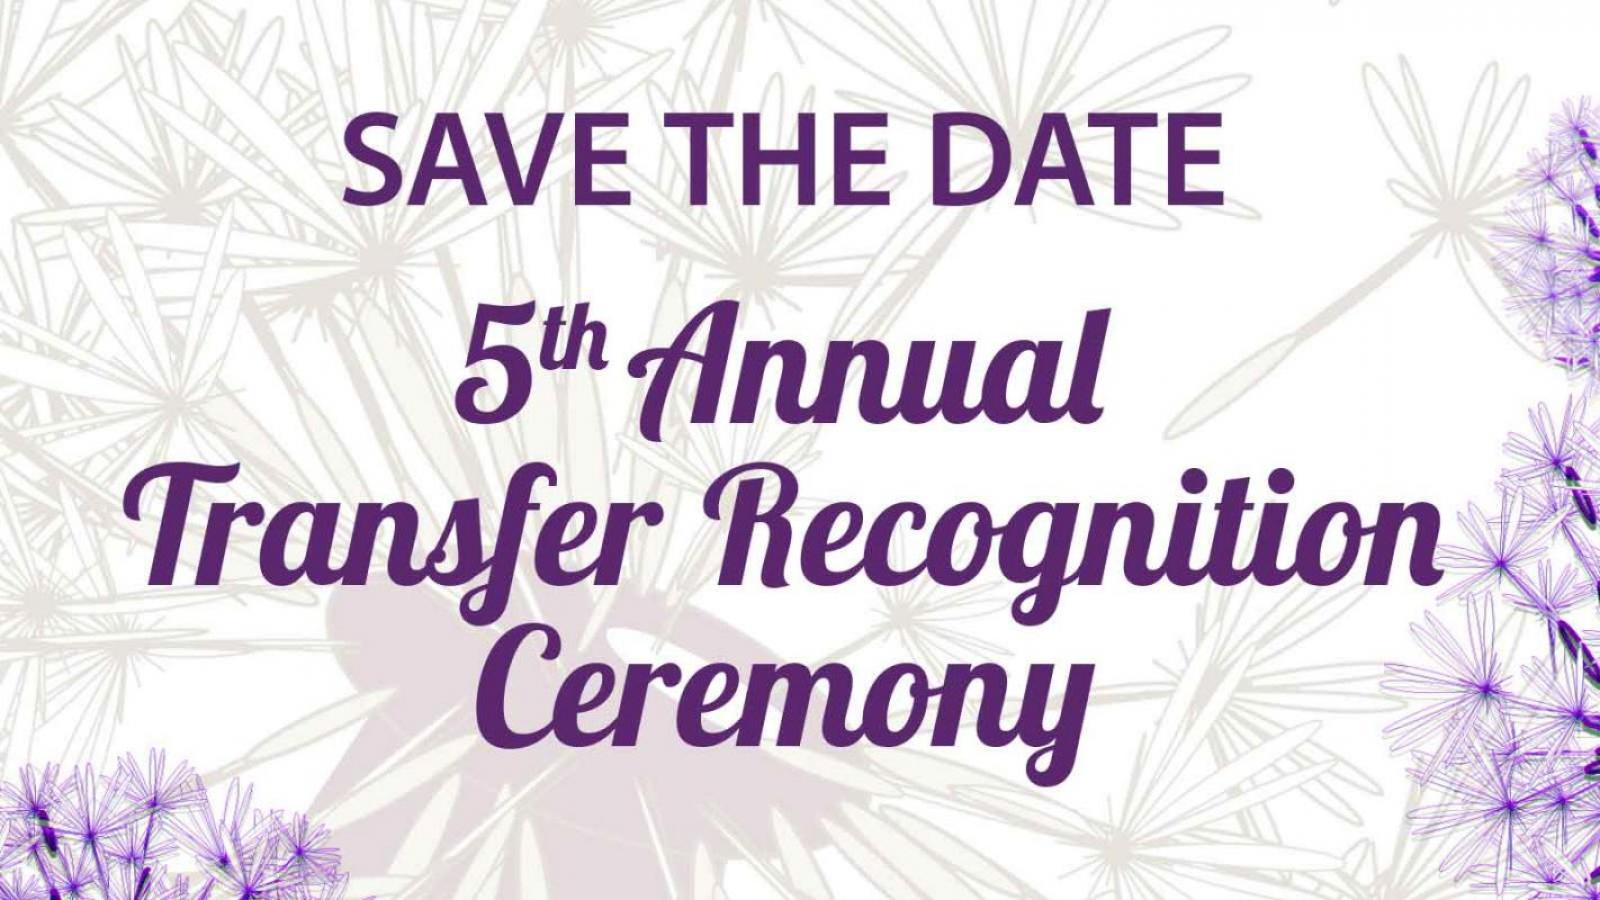 5th Annual Transfer Recognition Ceremony, Monday May 8